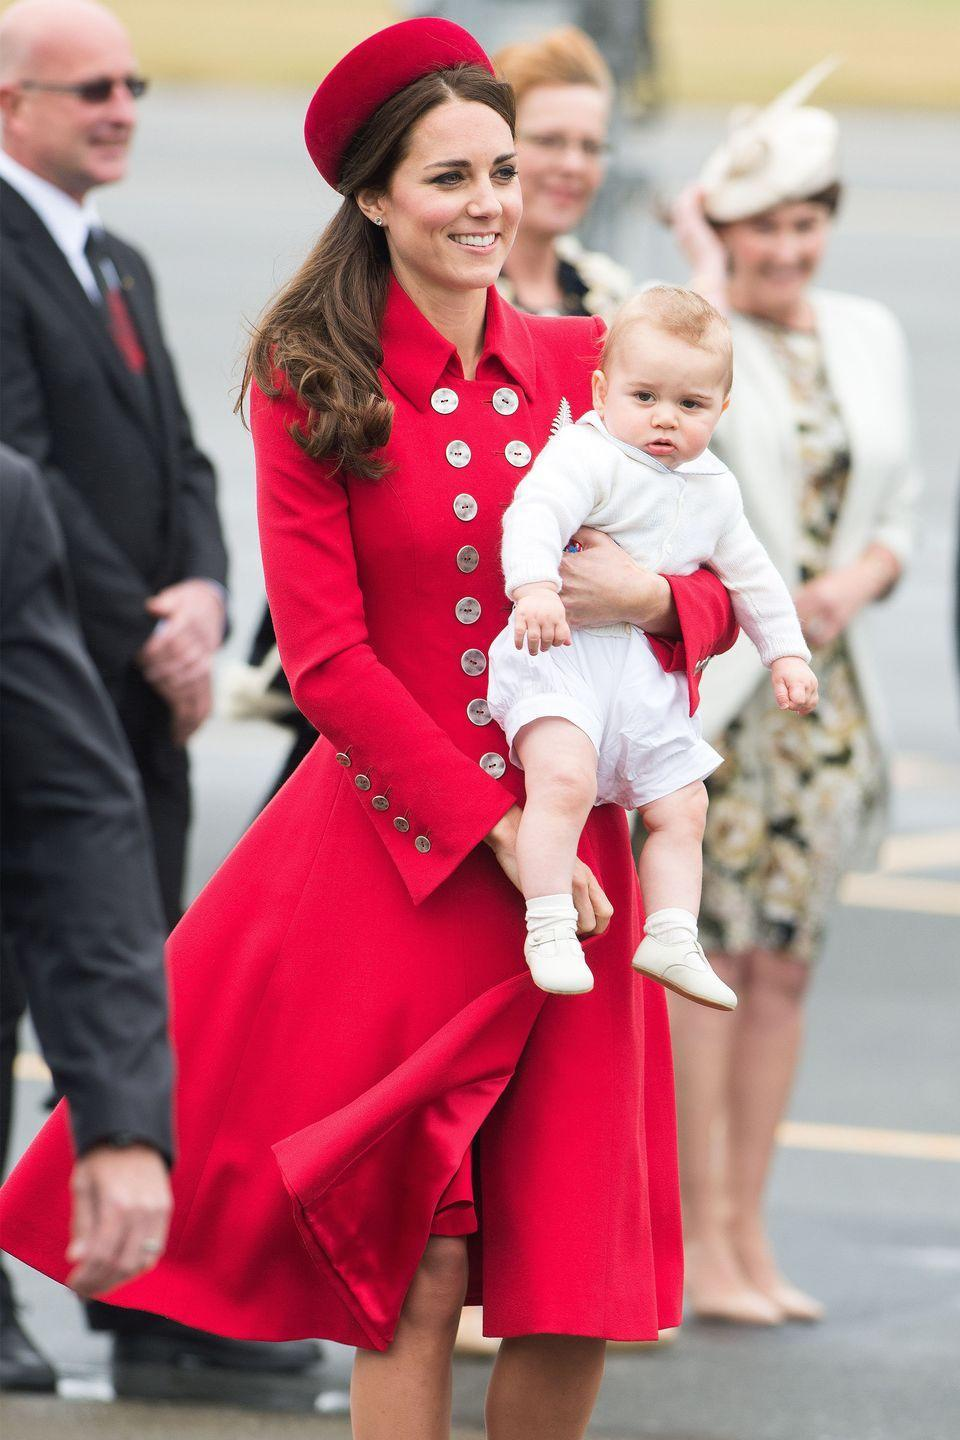 "<p>Flawless in <a href=""https://www.harpersbazaar.com/celebrity/red-carpet-dresses/g3827/kate-middleton-princess-diana-photos/"" rel=""nofollow noopener"" target=""_blank"" data-ylk=""slk:an all-red look"" class=""link rapid-noclick-resp"">an all-red look</a>, Duchess Kate arrives holding Prince George in New Zealand.</p>"